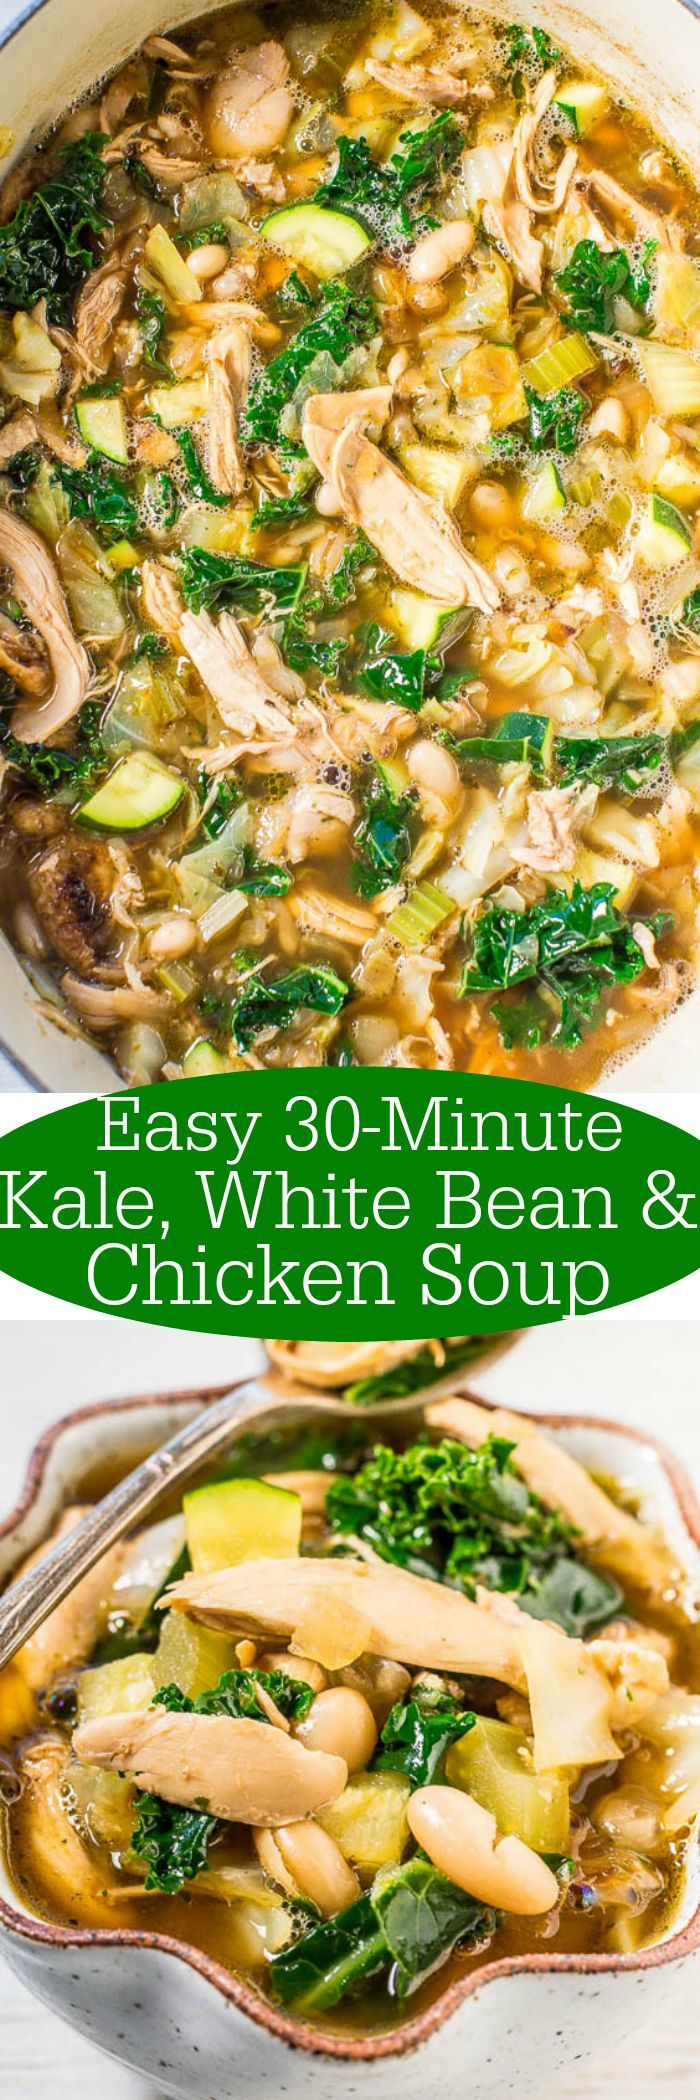 Easy 30-Minute Kale, White Bean, and Chicken Soup - Loaded with juicy chicken, healthy kale, and tender beans! Easy, hearty, and satisfying! Love it when something healthy tastes so good!!